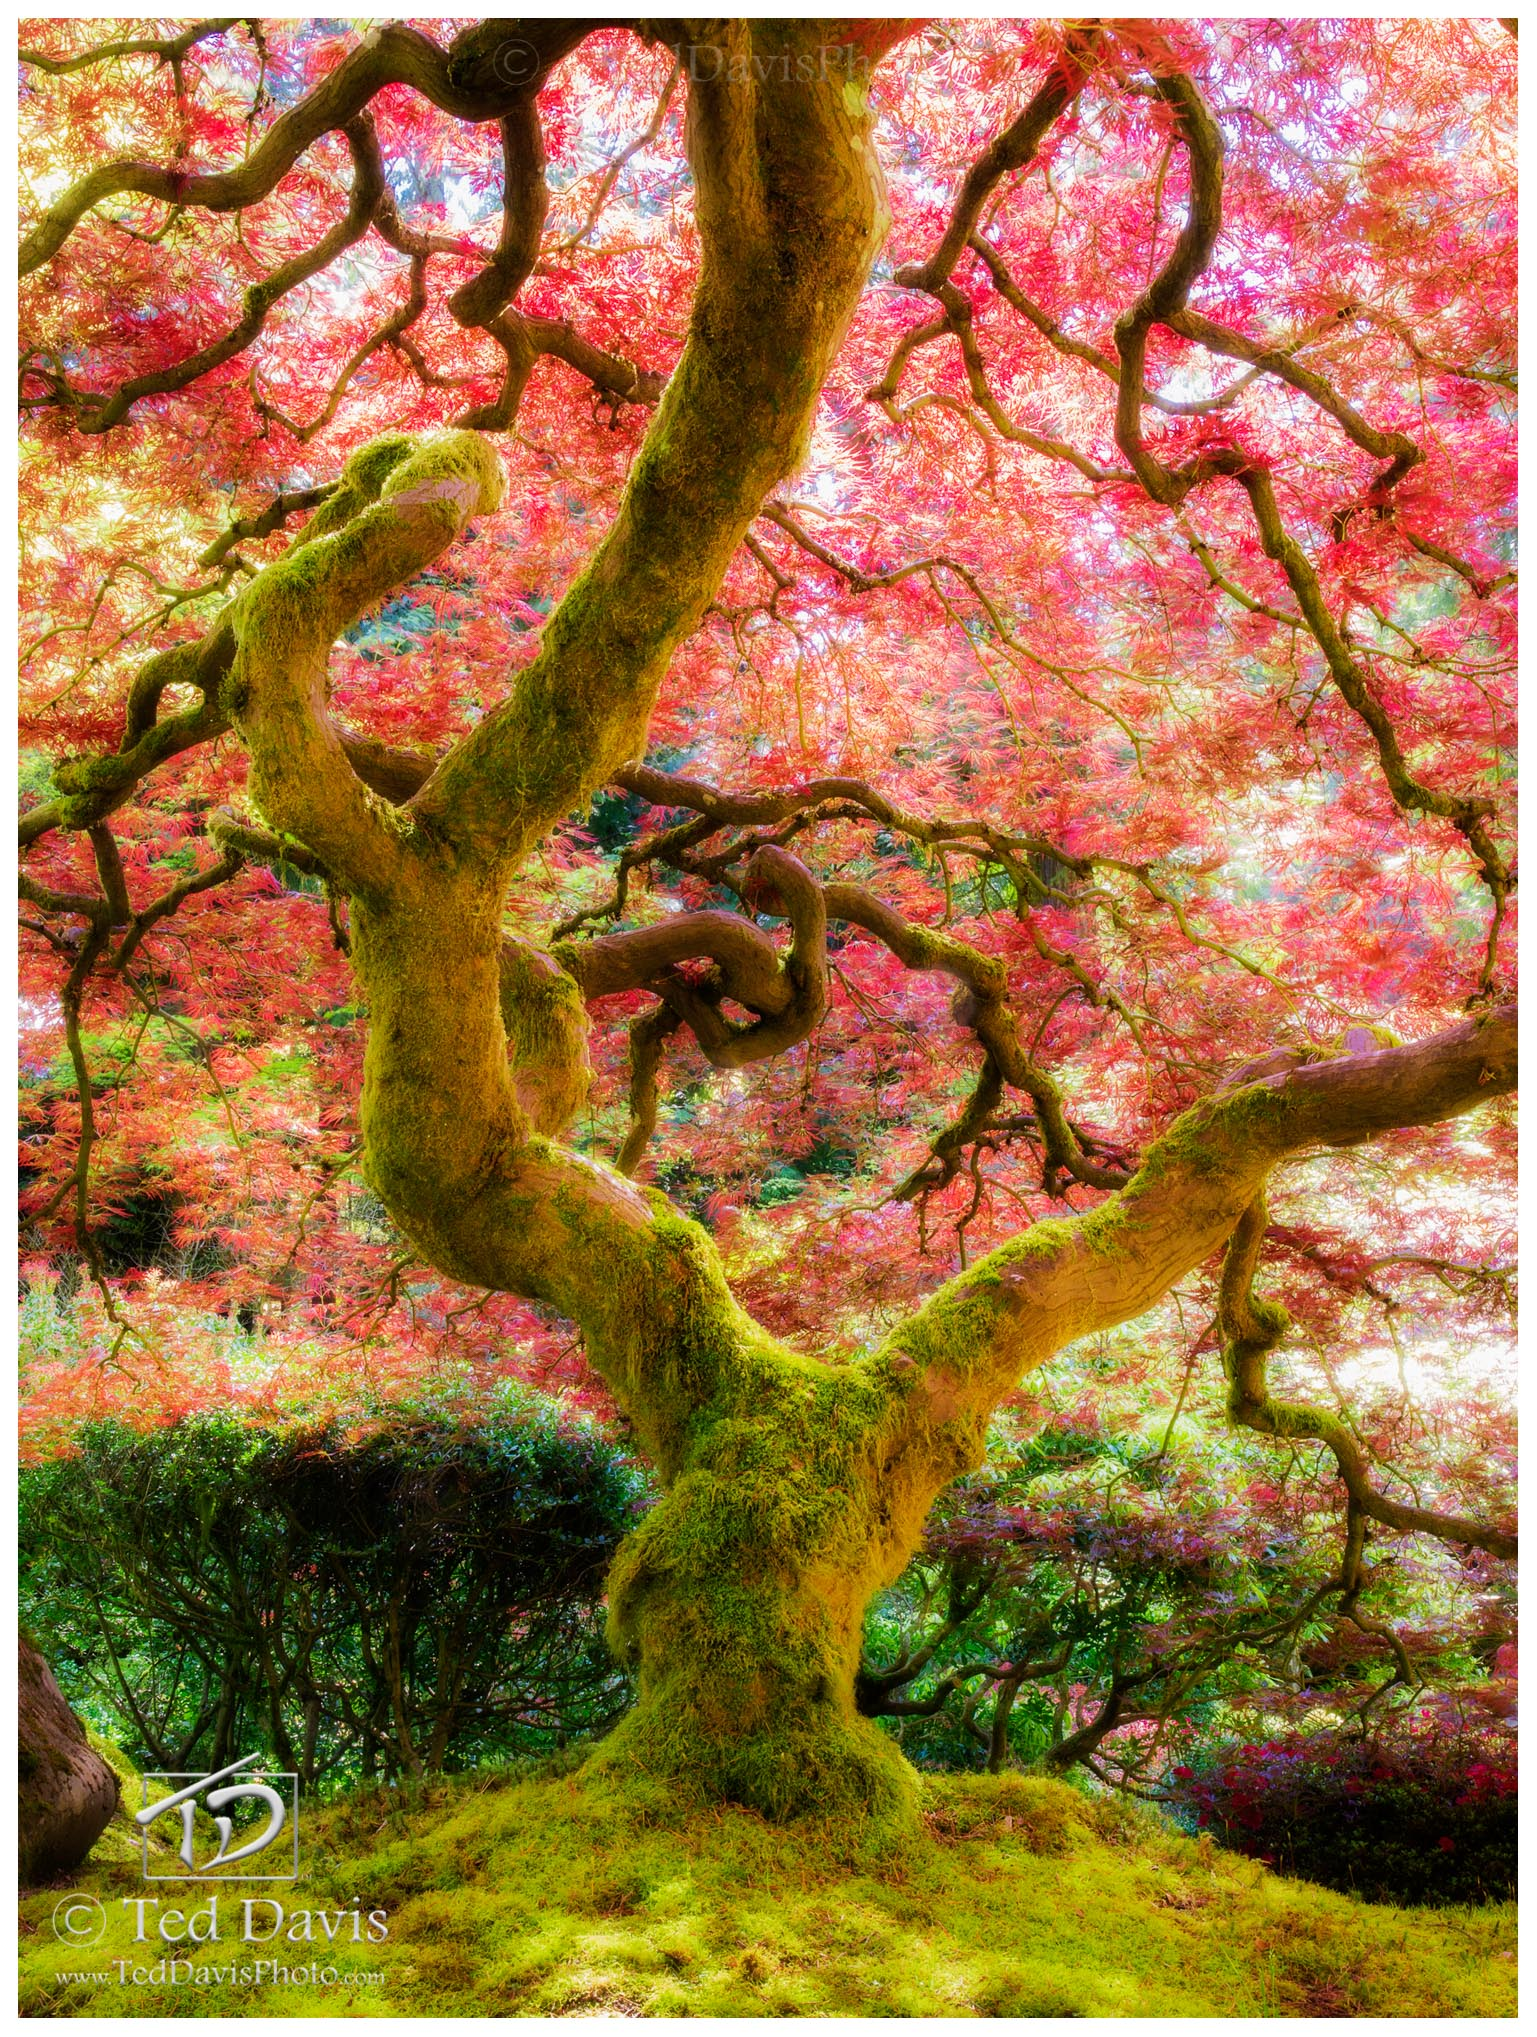 spring, reborn, oregon, japanese, tree, light, vibrant, bursting, color, love, branches, moment, perfect, photo